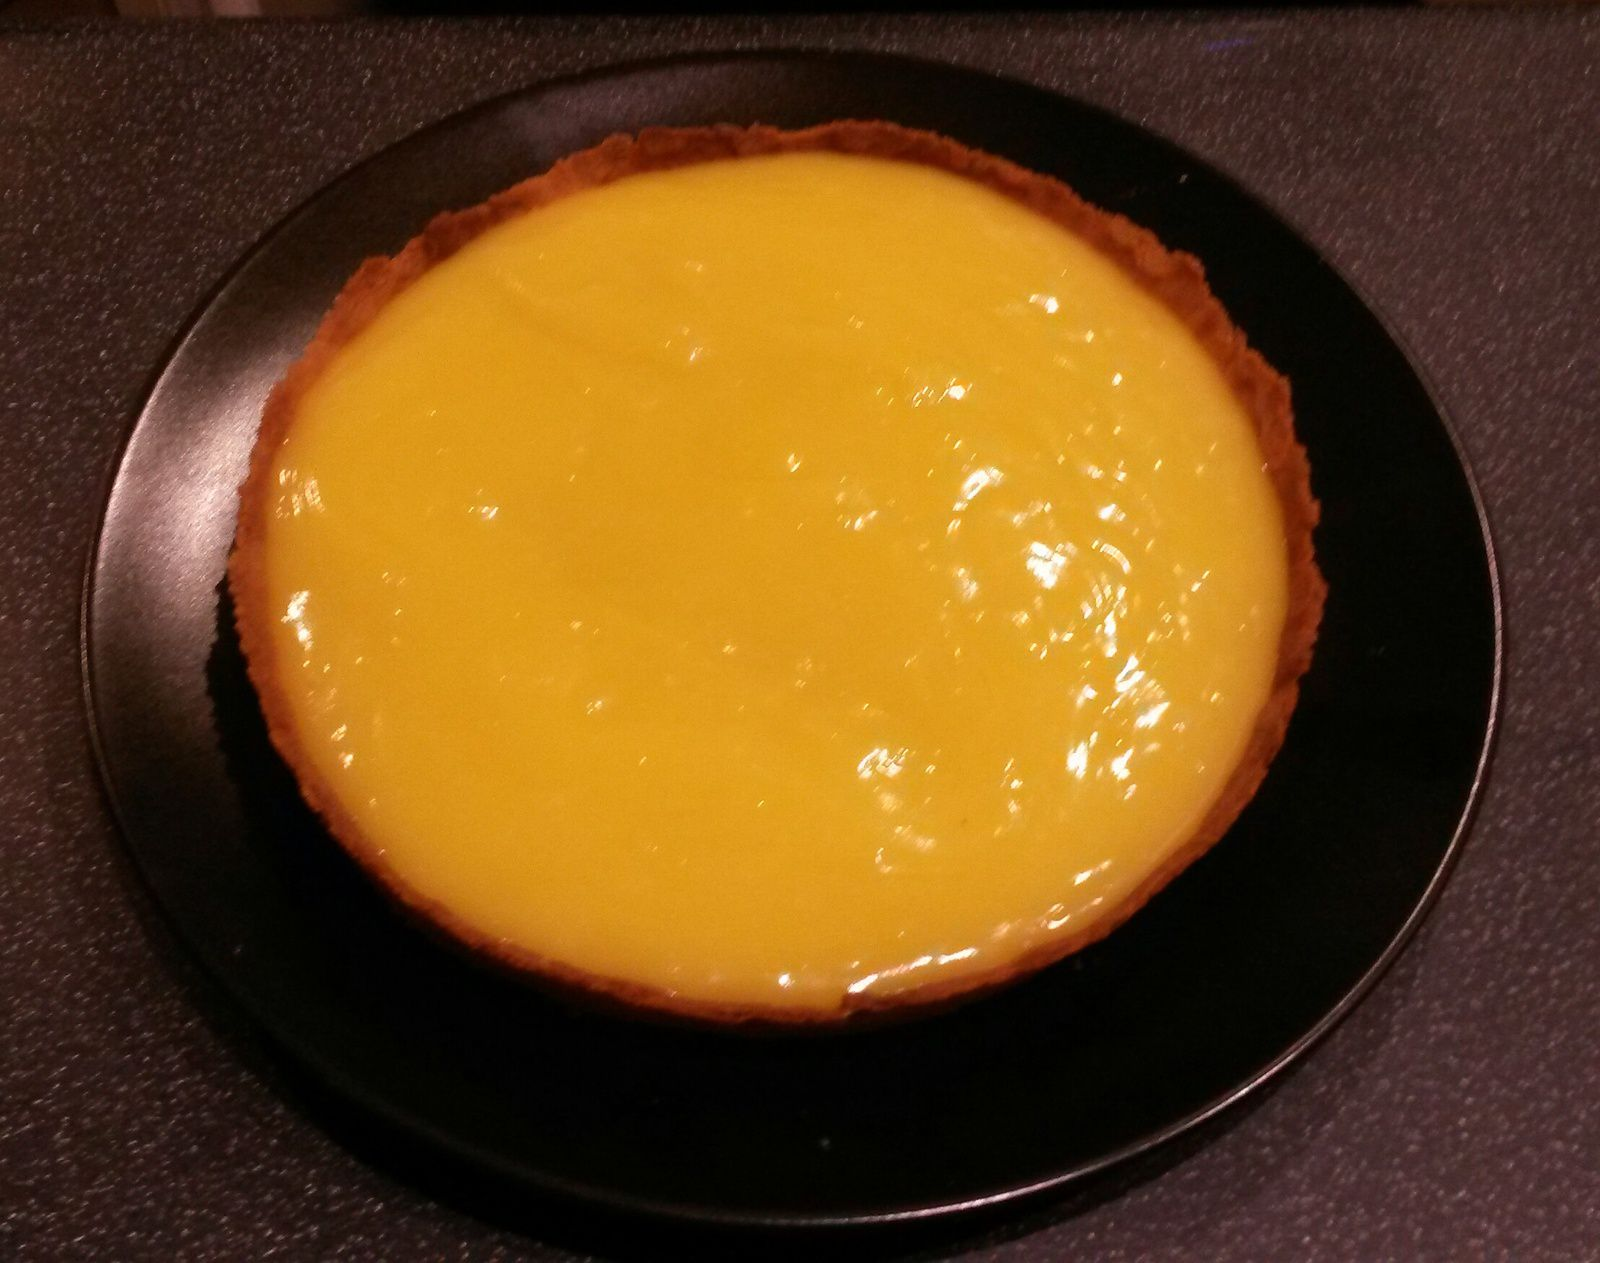 Tarte au citron meringuée - Angel's Kitchen